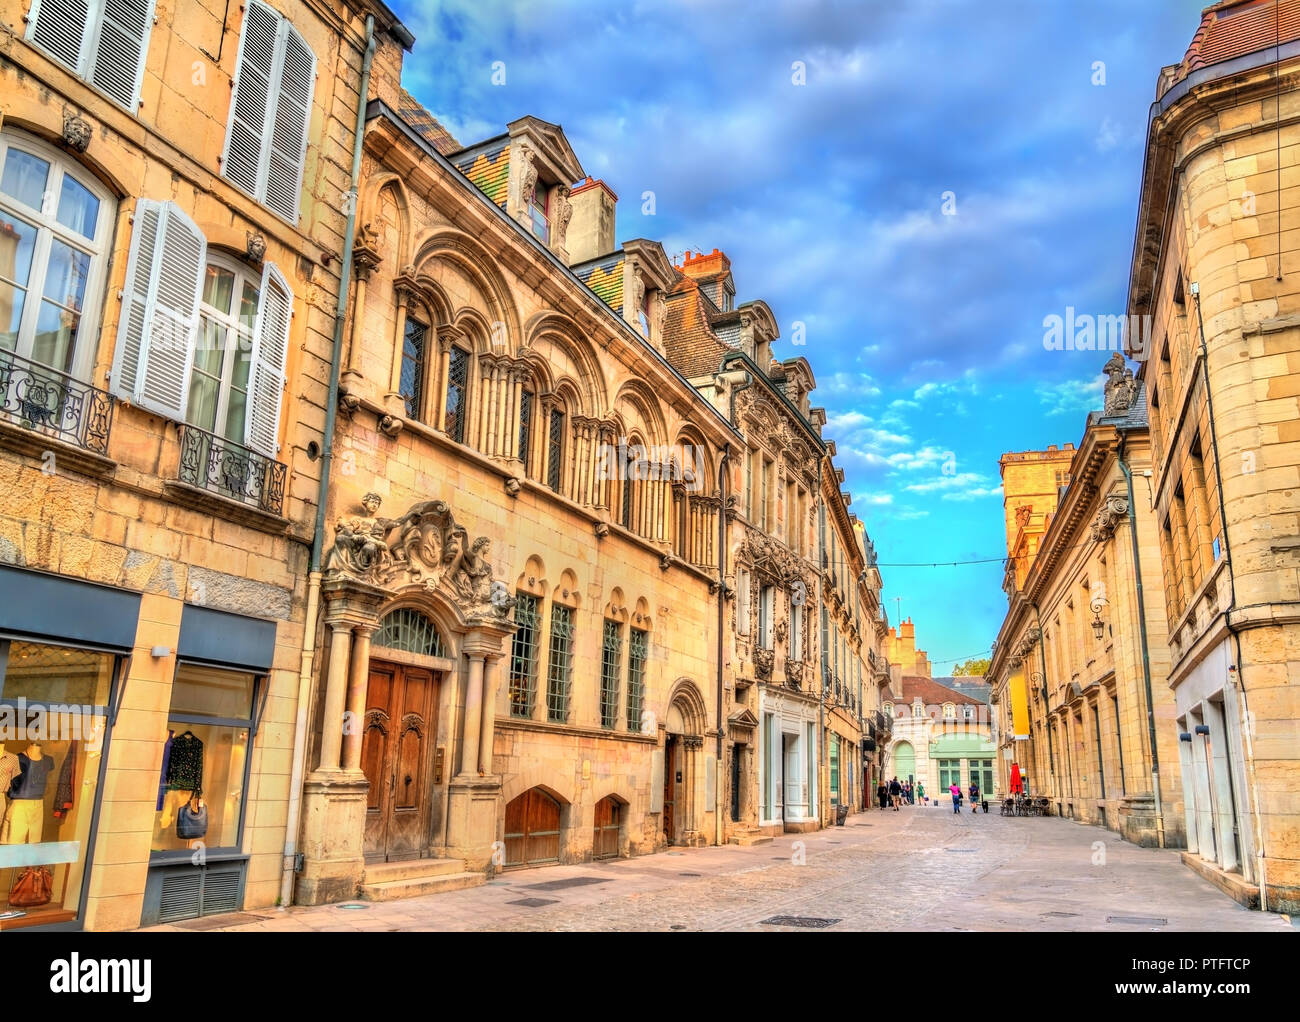 Traditional buildings in the Old Town of Dijon, France Stock Photo